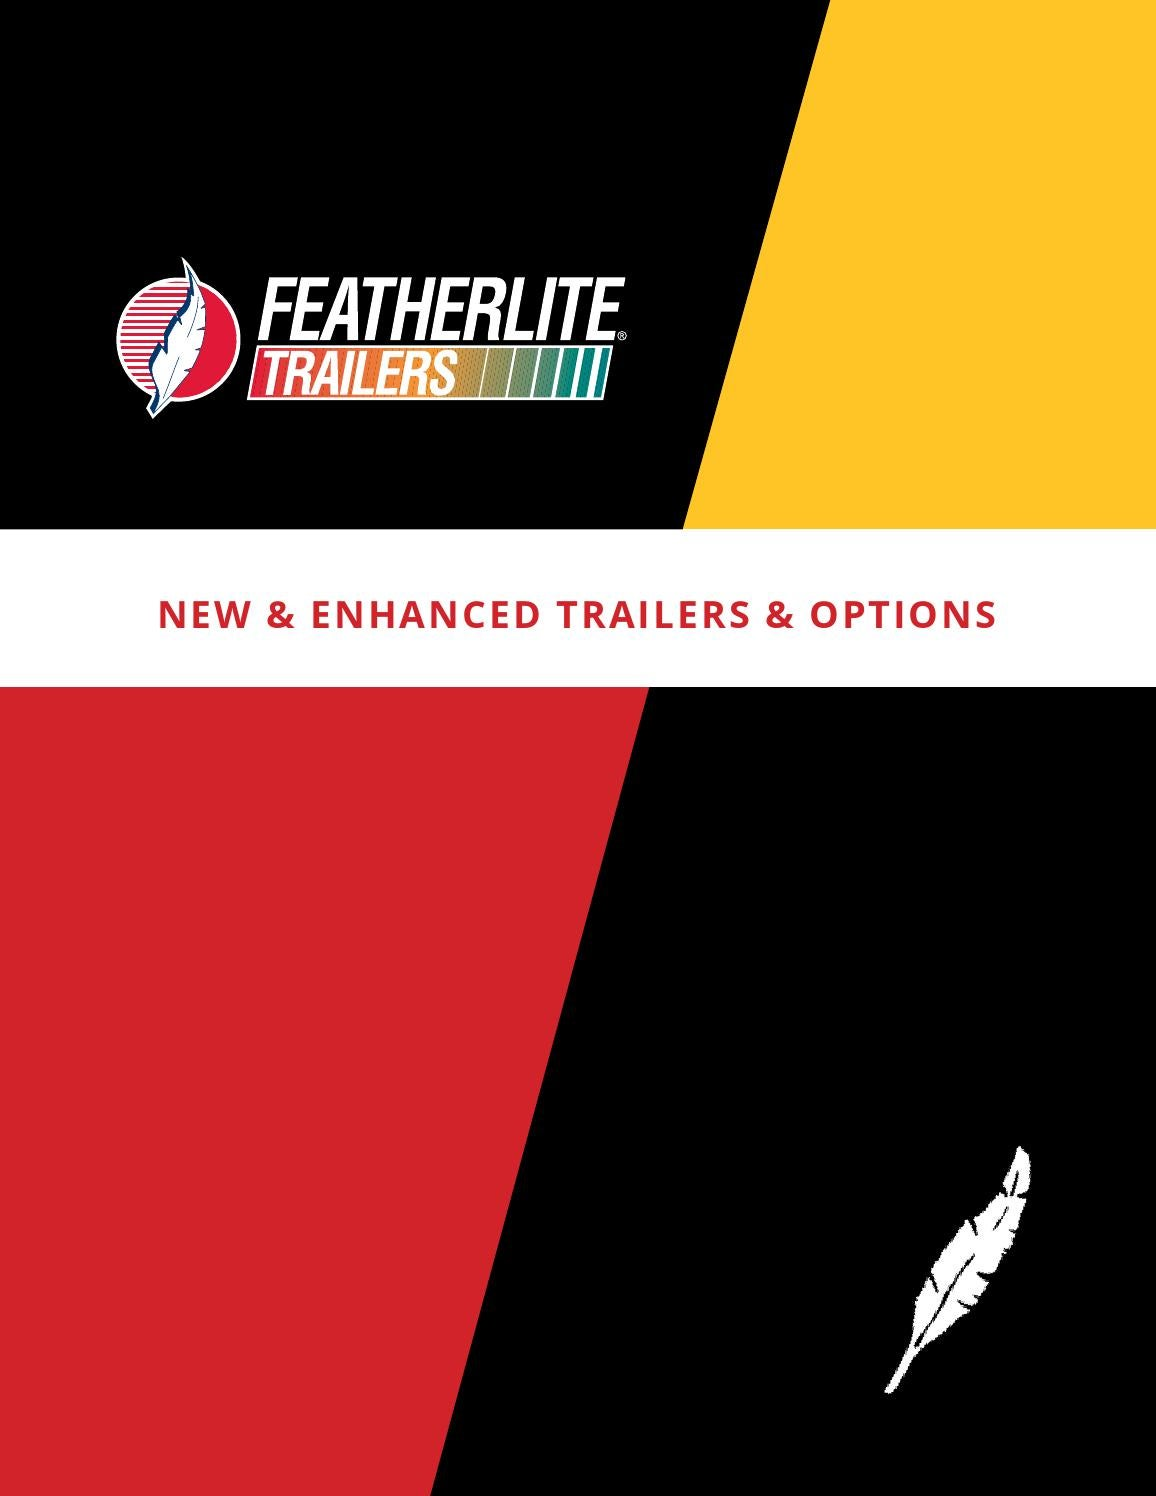 New 2014 Featherlite Trailers By Featherlite Trailers Issuu